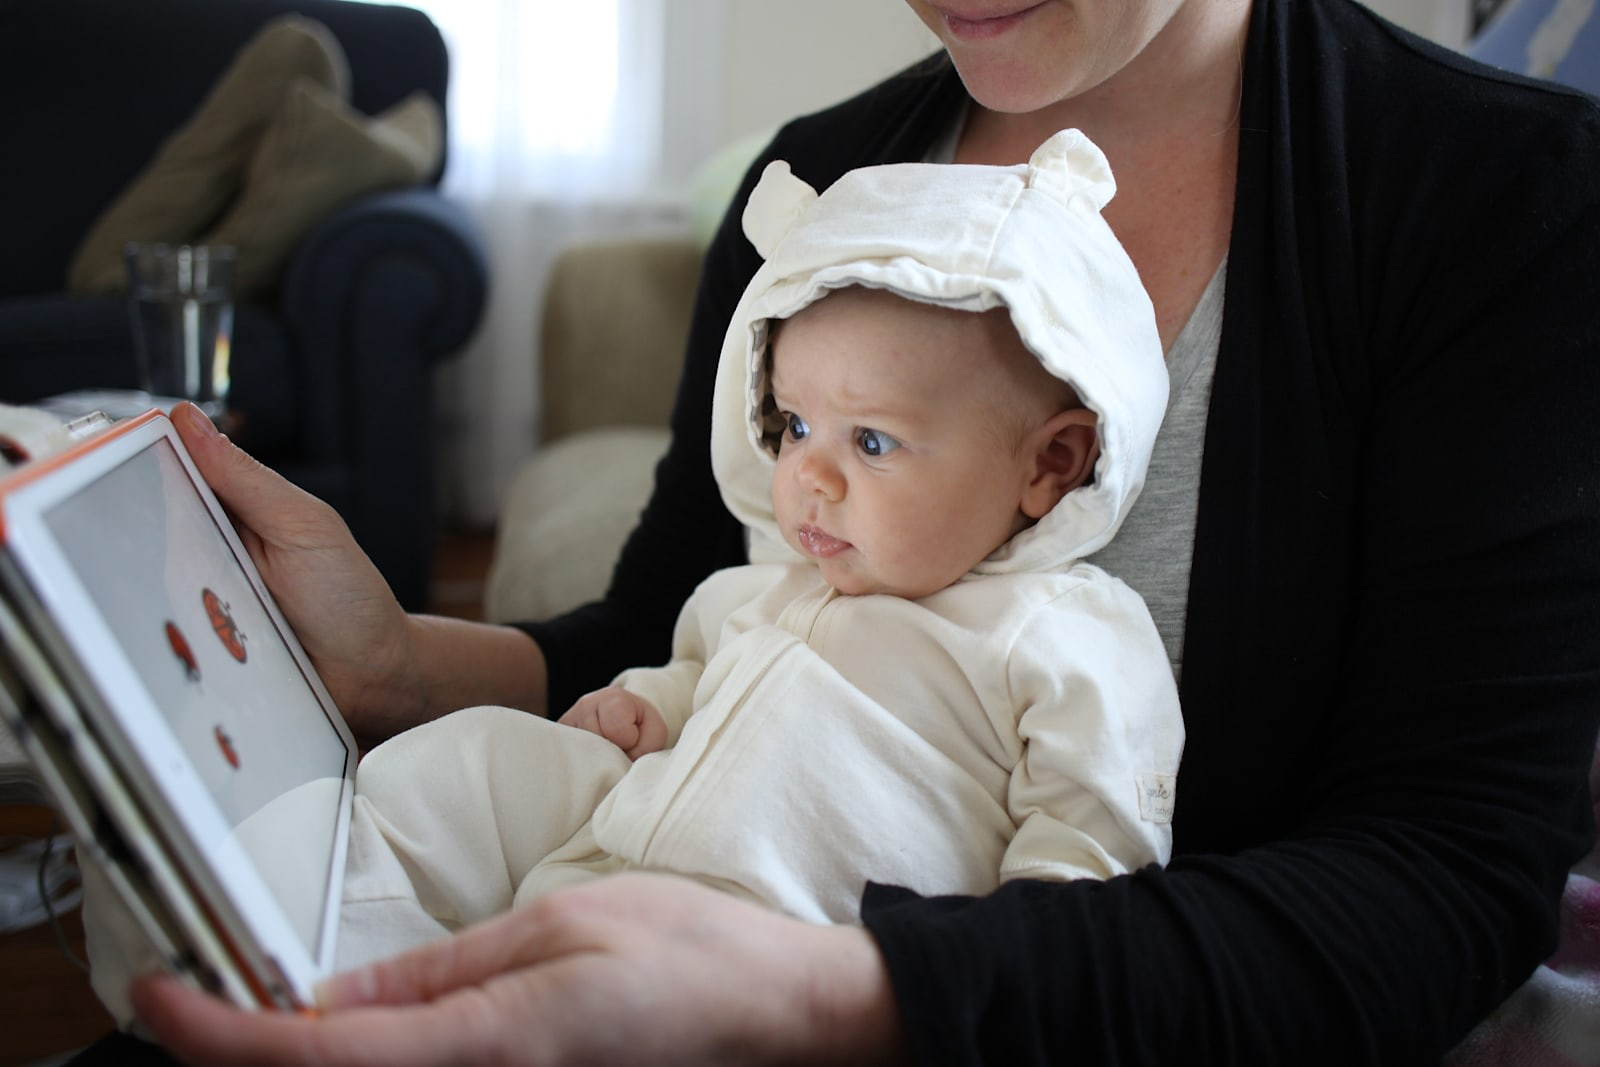 Doctors relax rules on letting babies watch screens